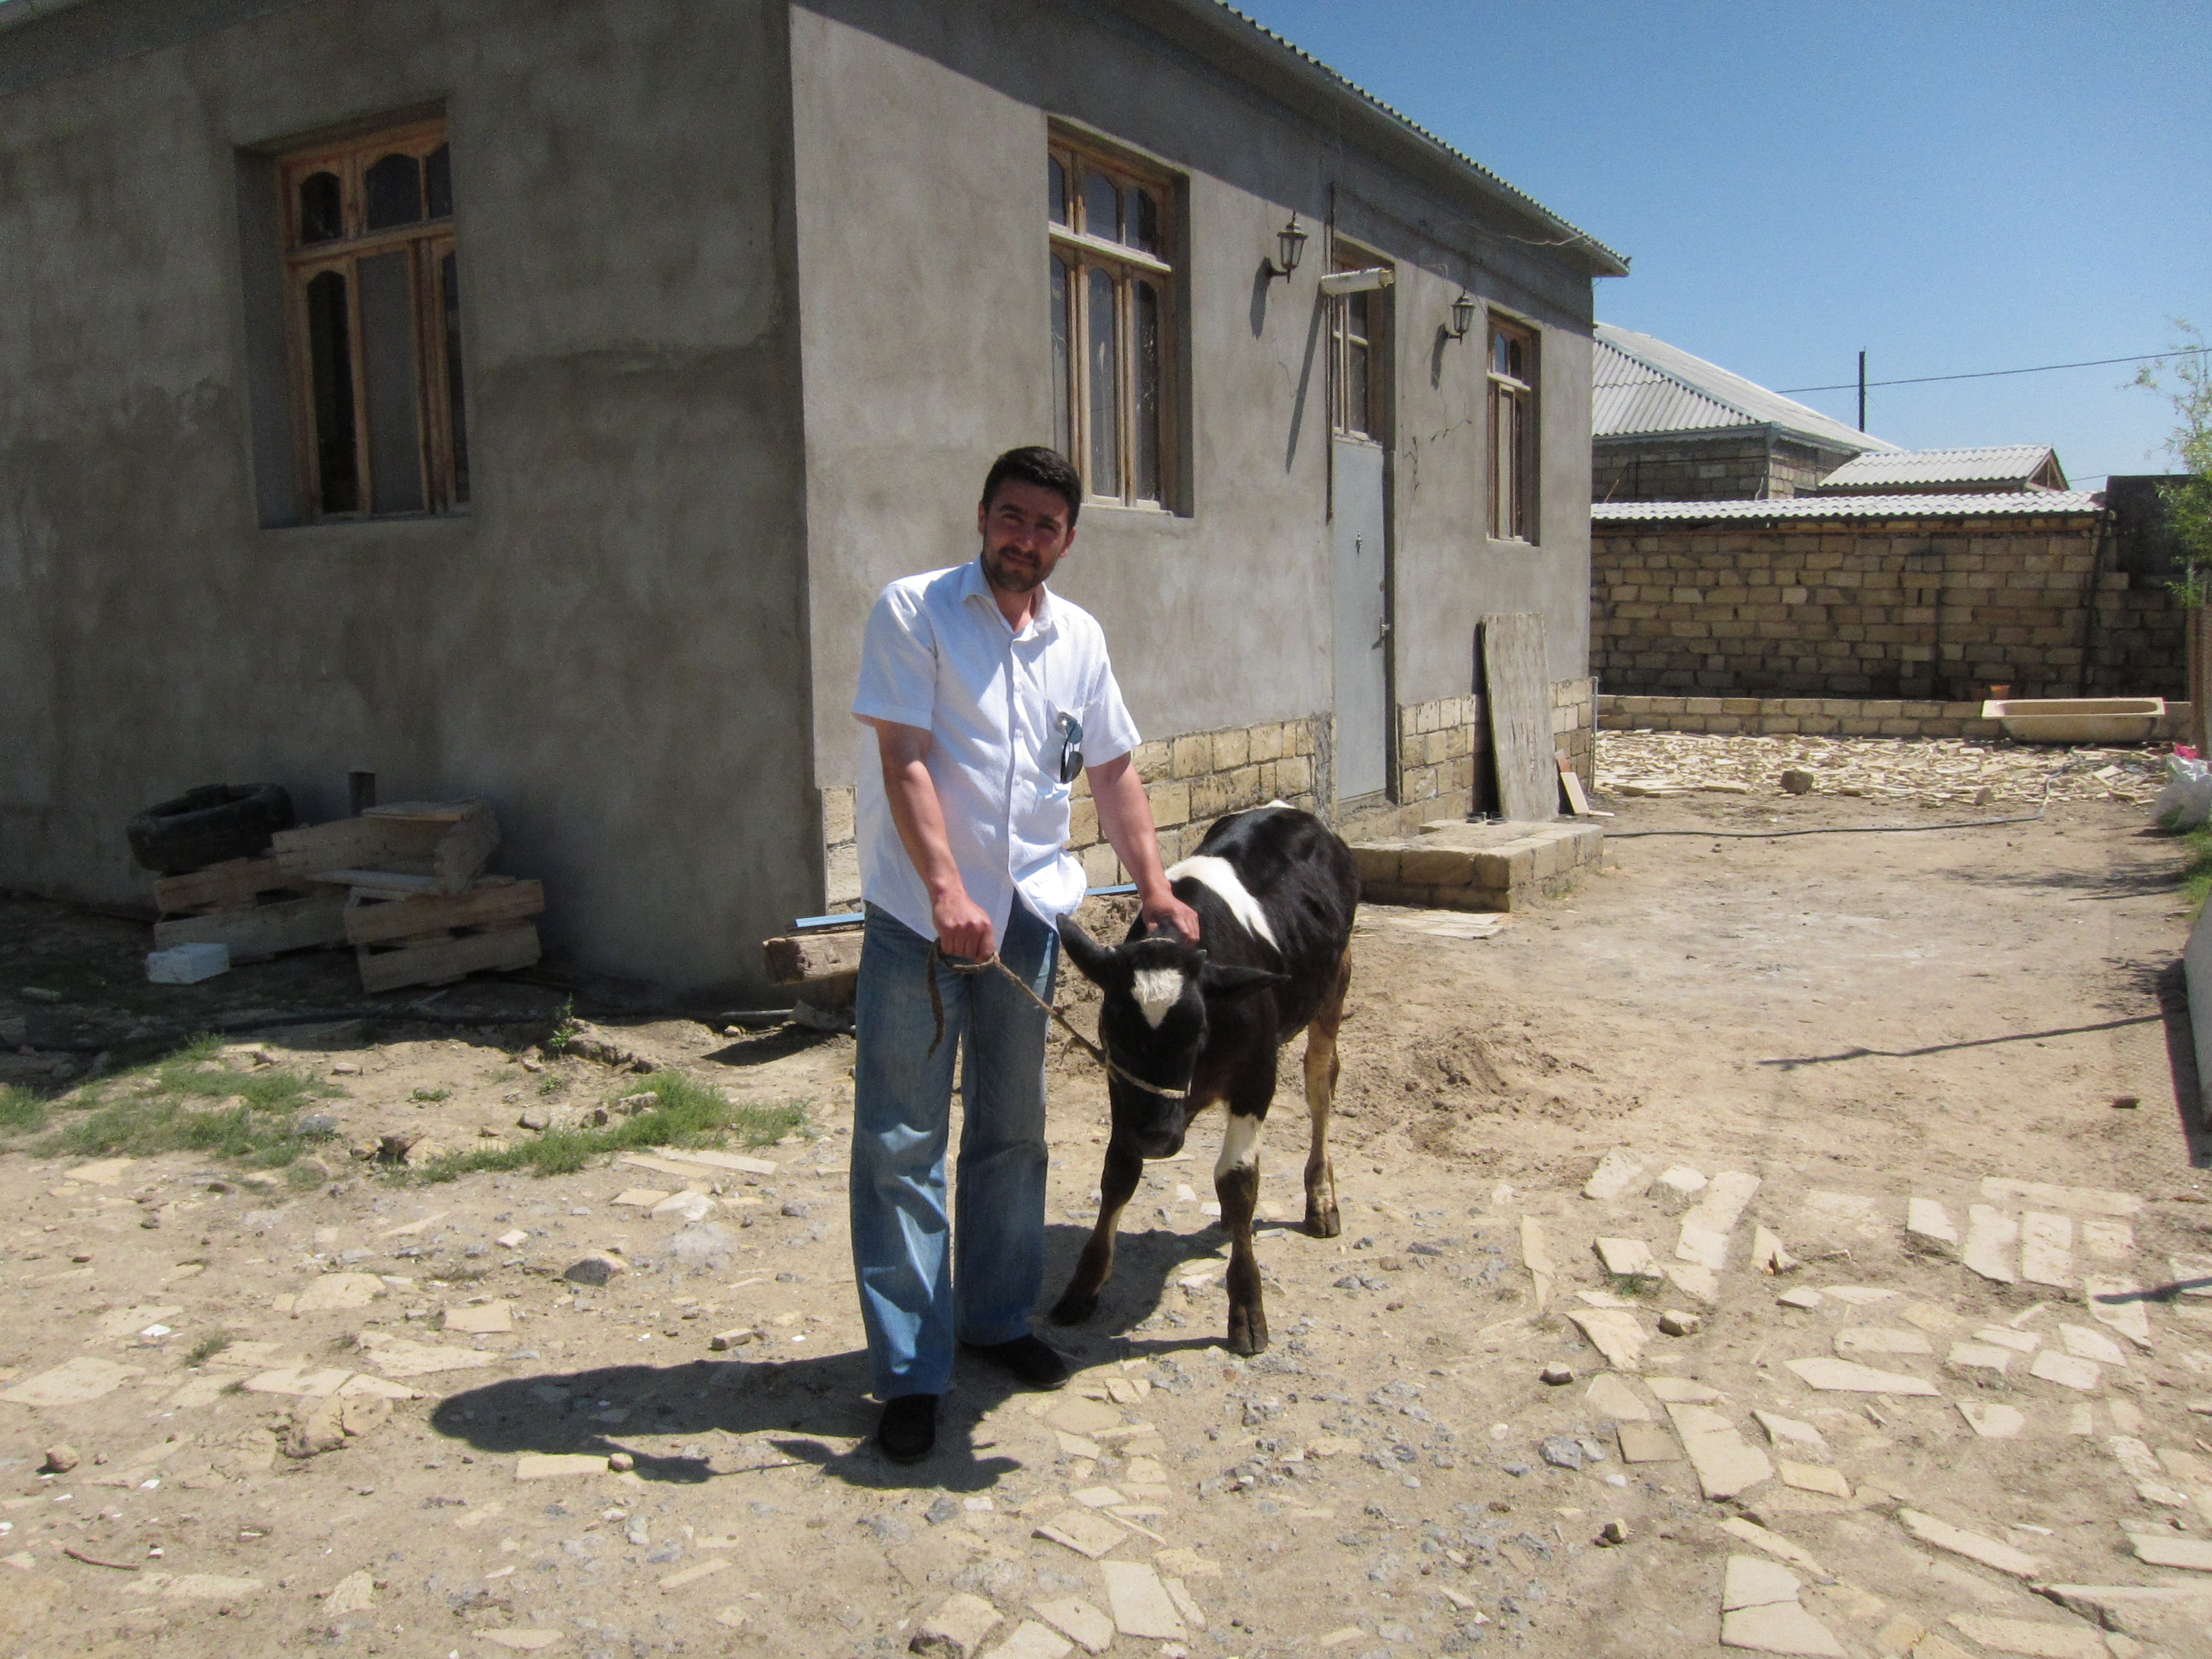 Kiva News: Why is Microfinance Important in Azerbaijan?